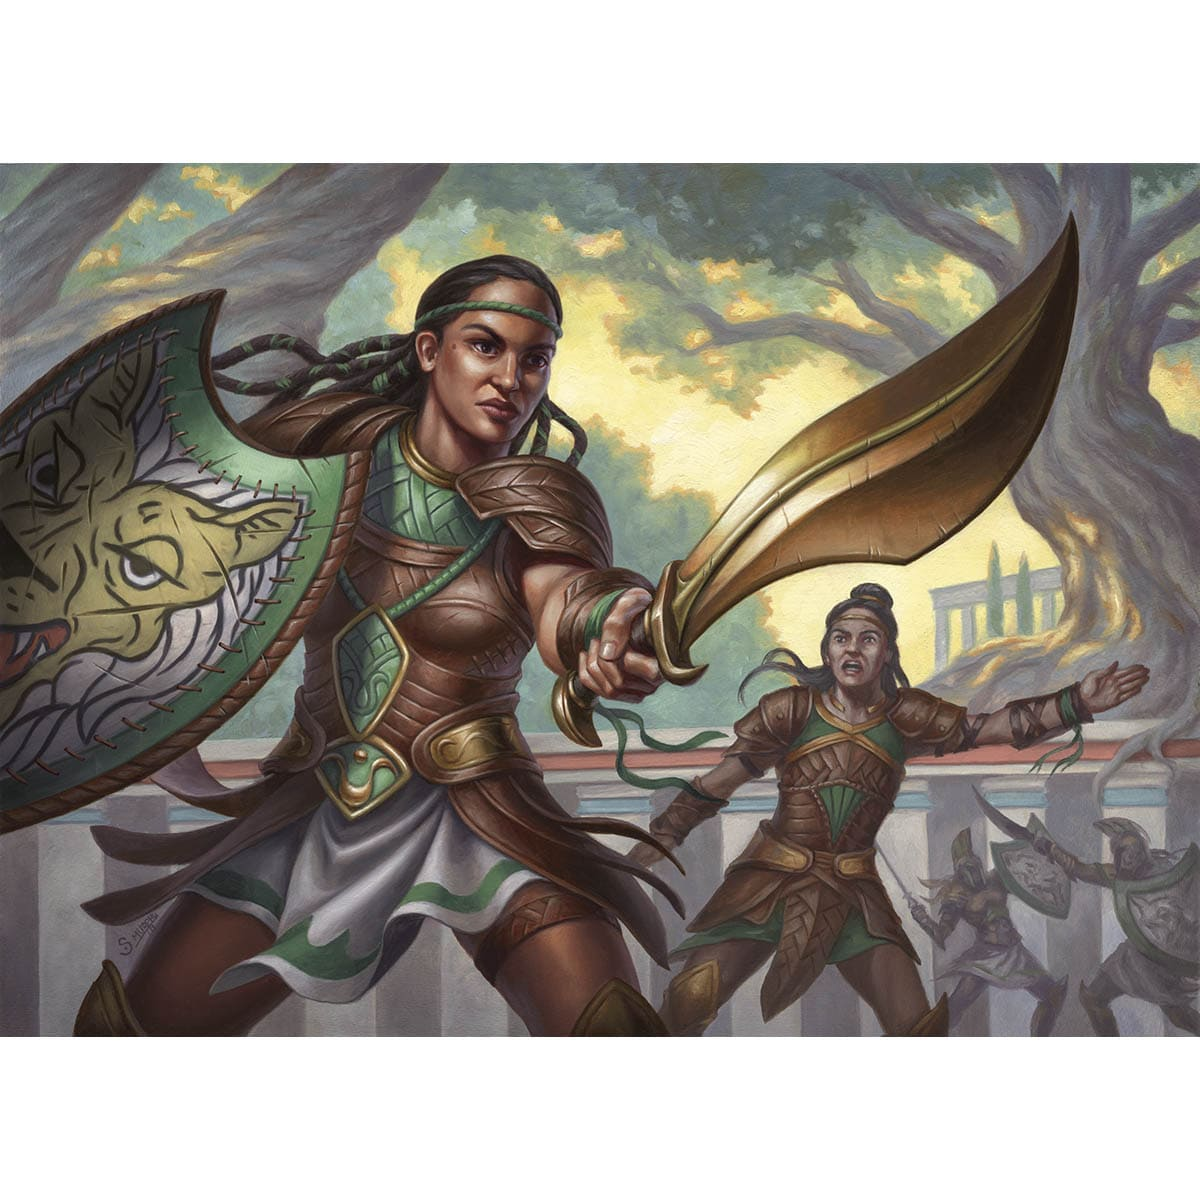 Setessan Training Print - Print - Original Magic Art - Accessories for Magic the Gathering and other card games